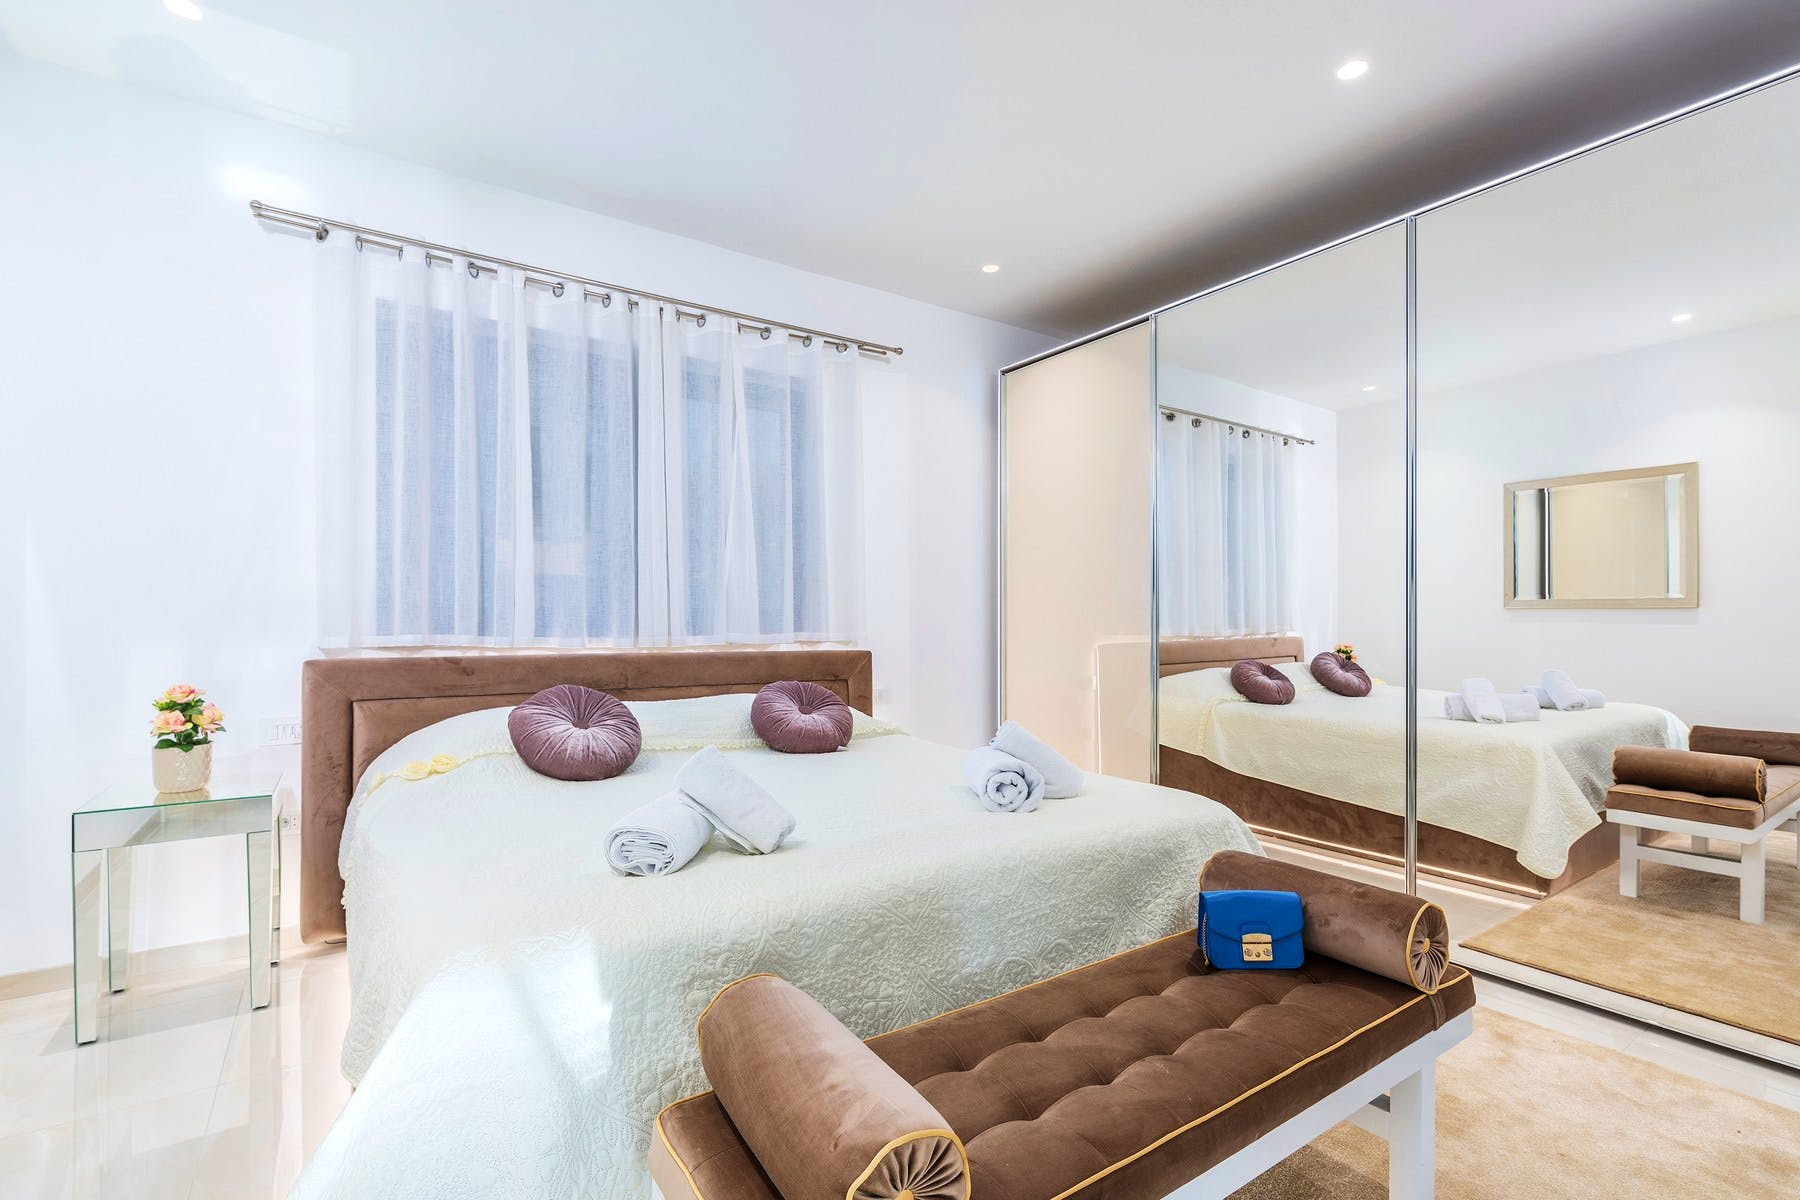 Double bedroom in the villa for rent